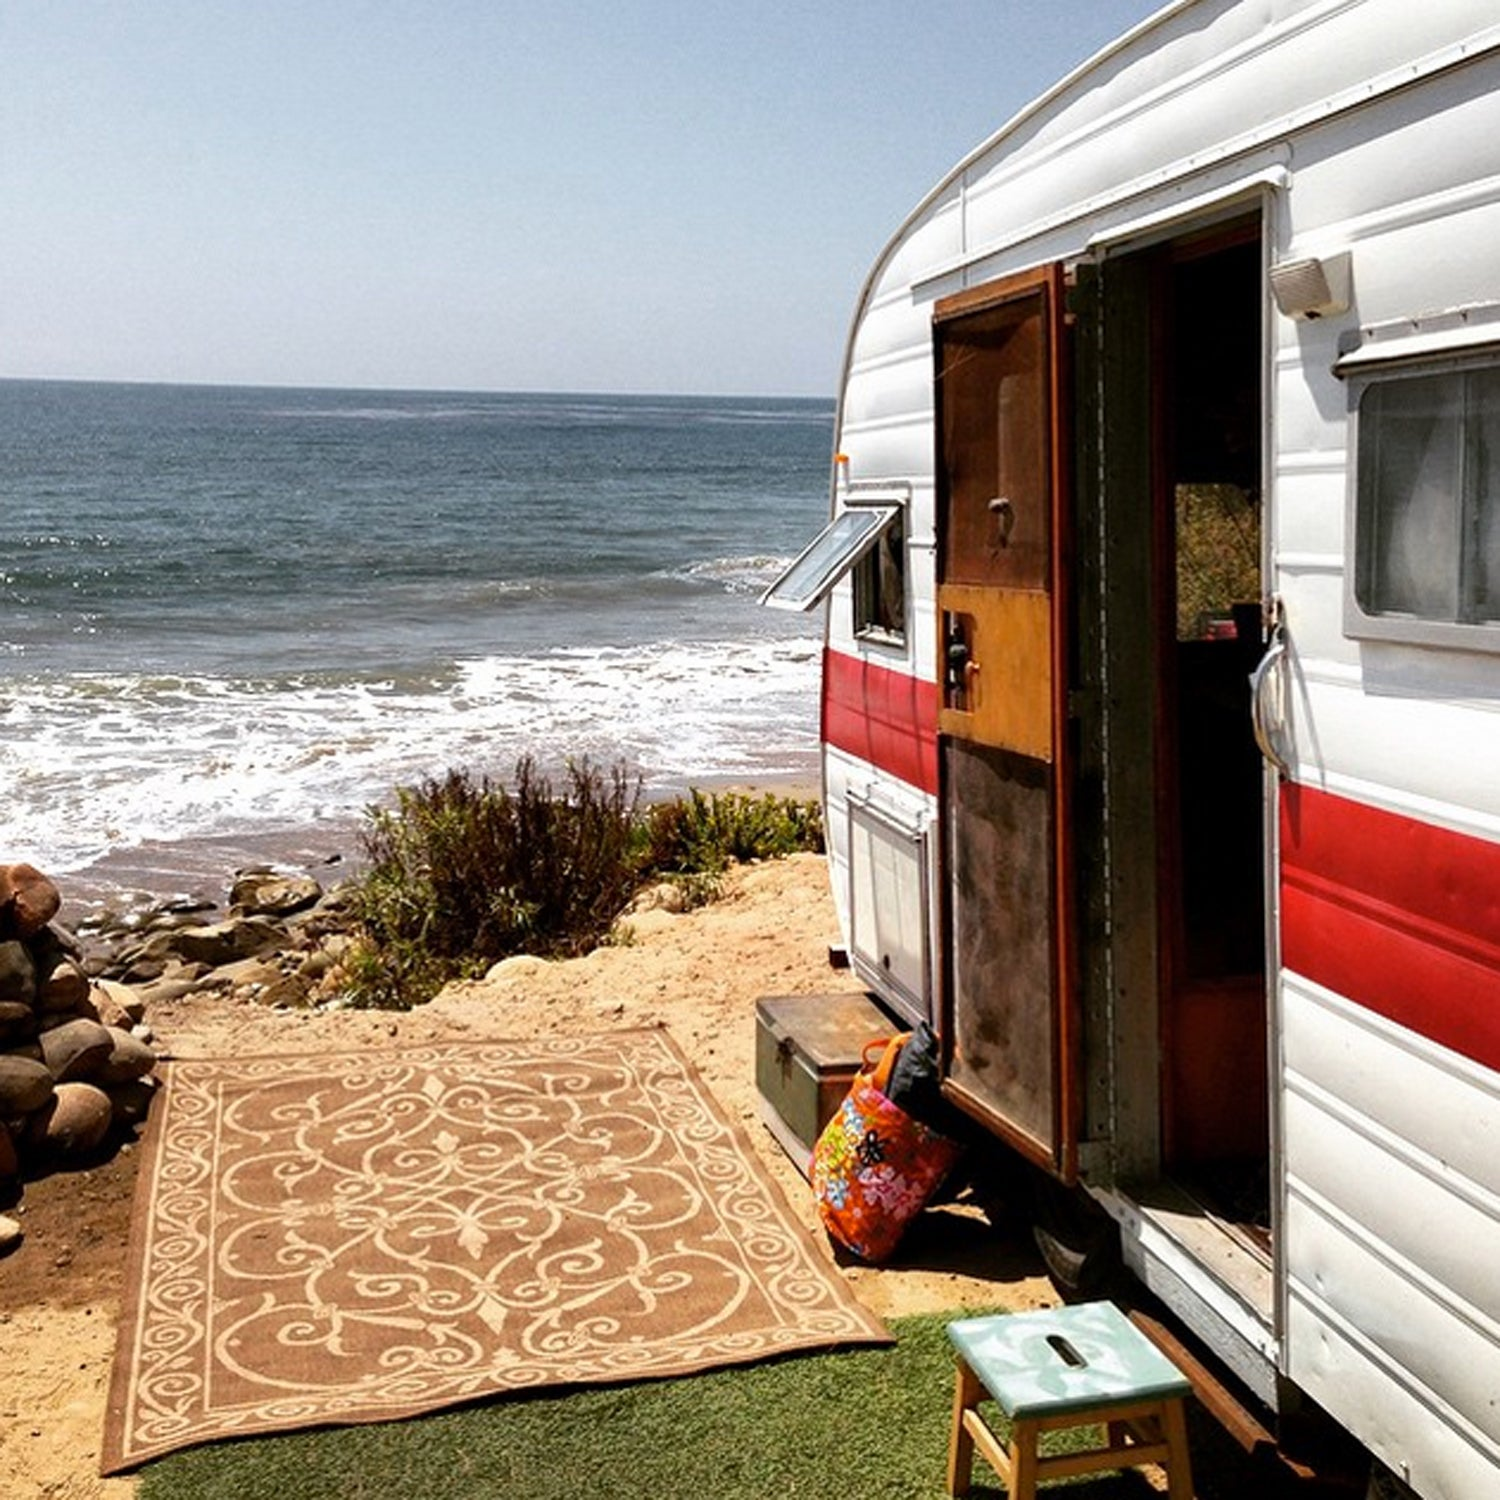 As the negative ions from the crashing waves lull me to sleep I travel to the farthest reaches of the cosmos. #BestTowns2015 #VenturaCa #Ventura #CityofVentura #beach #camping